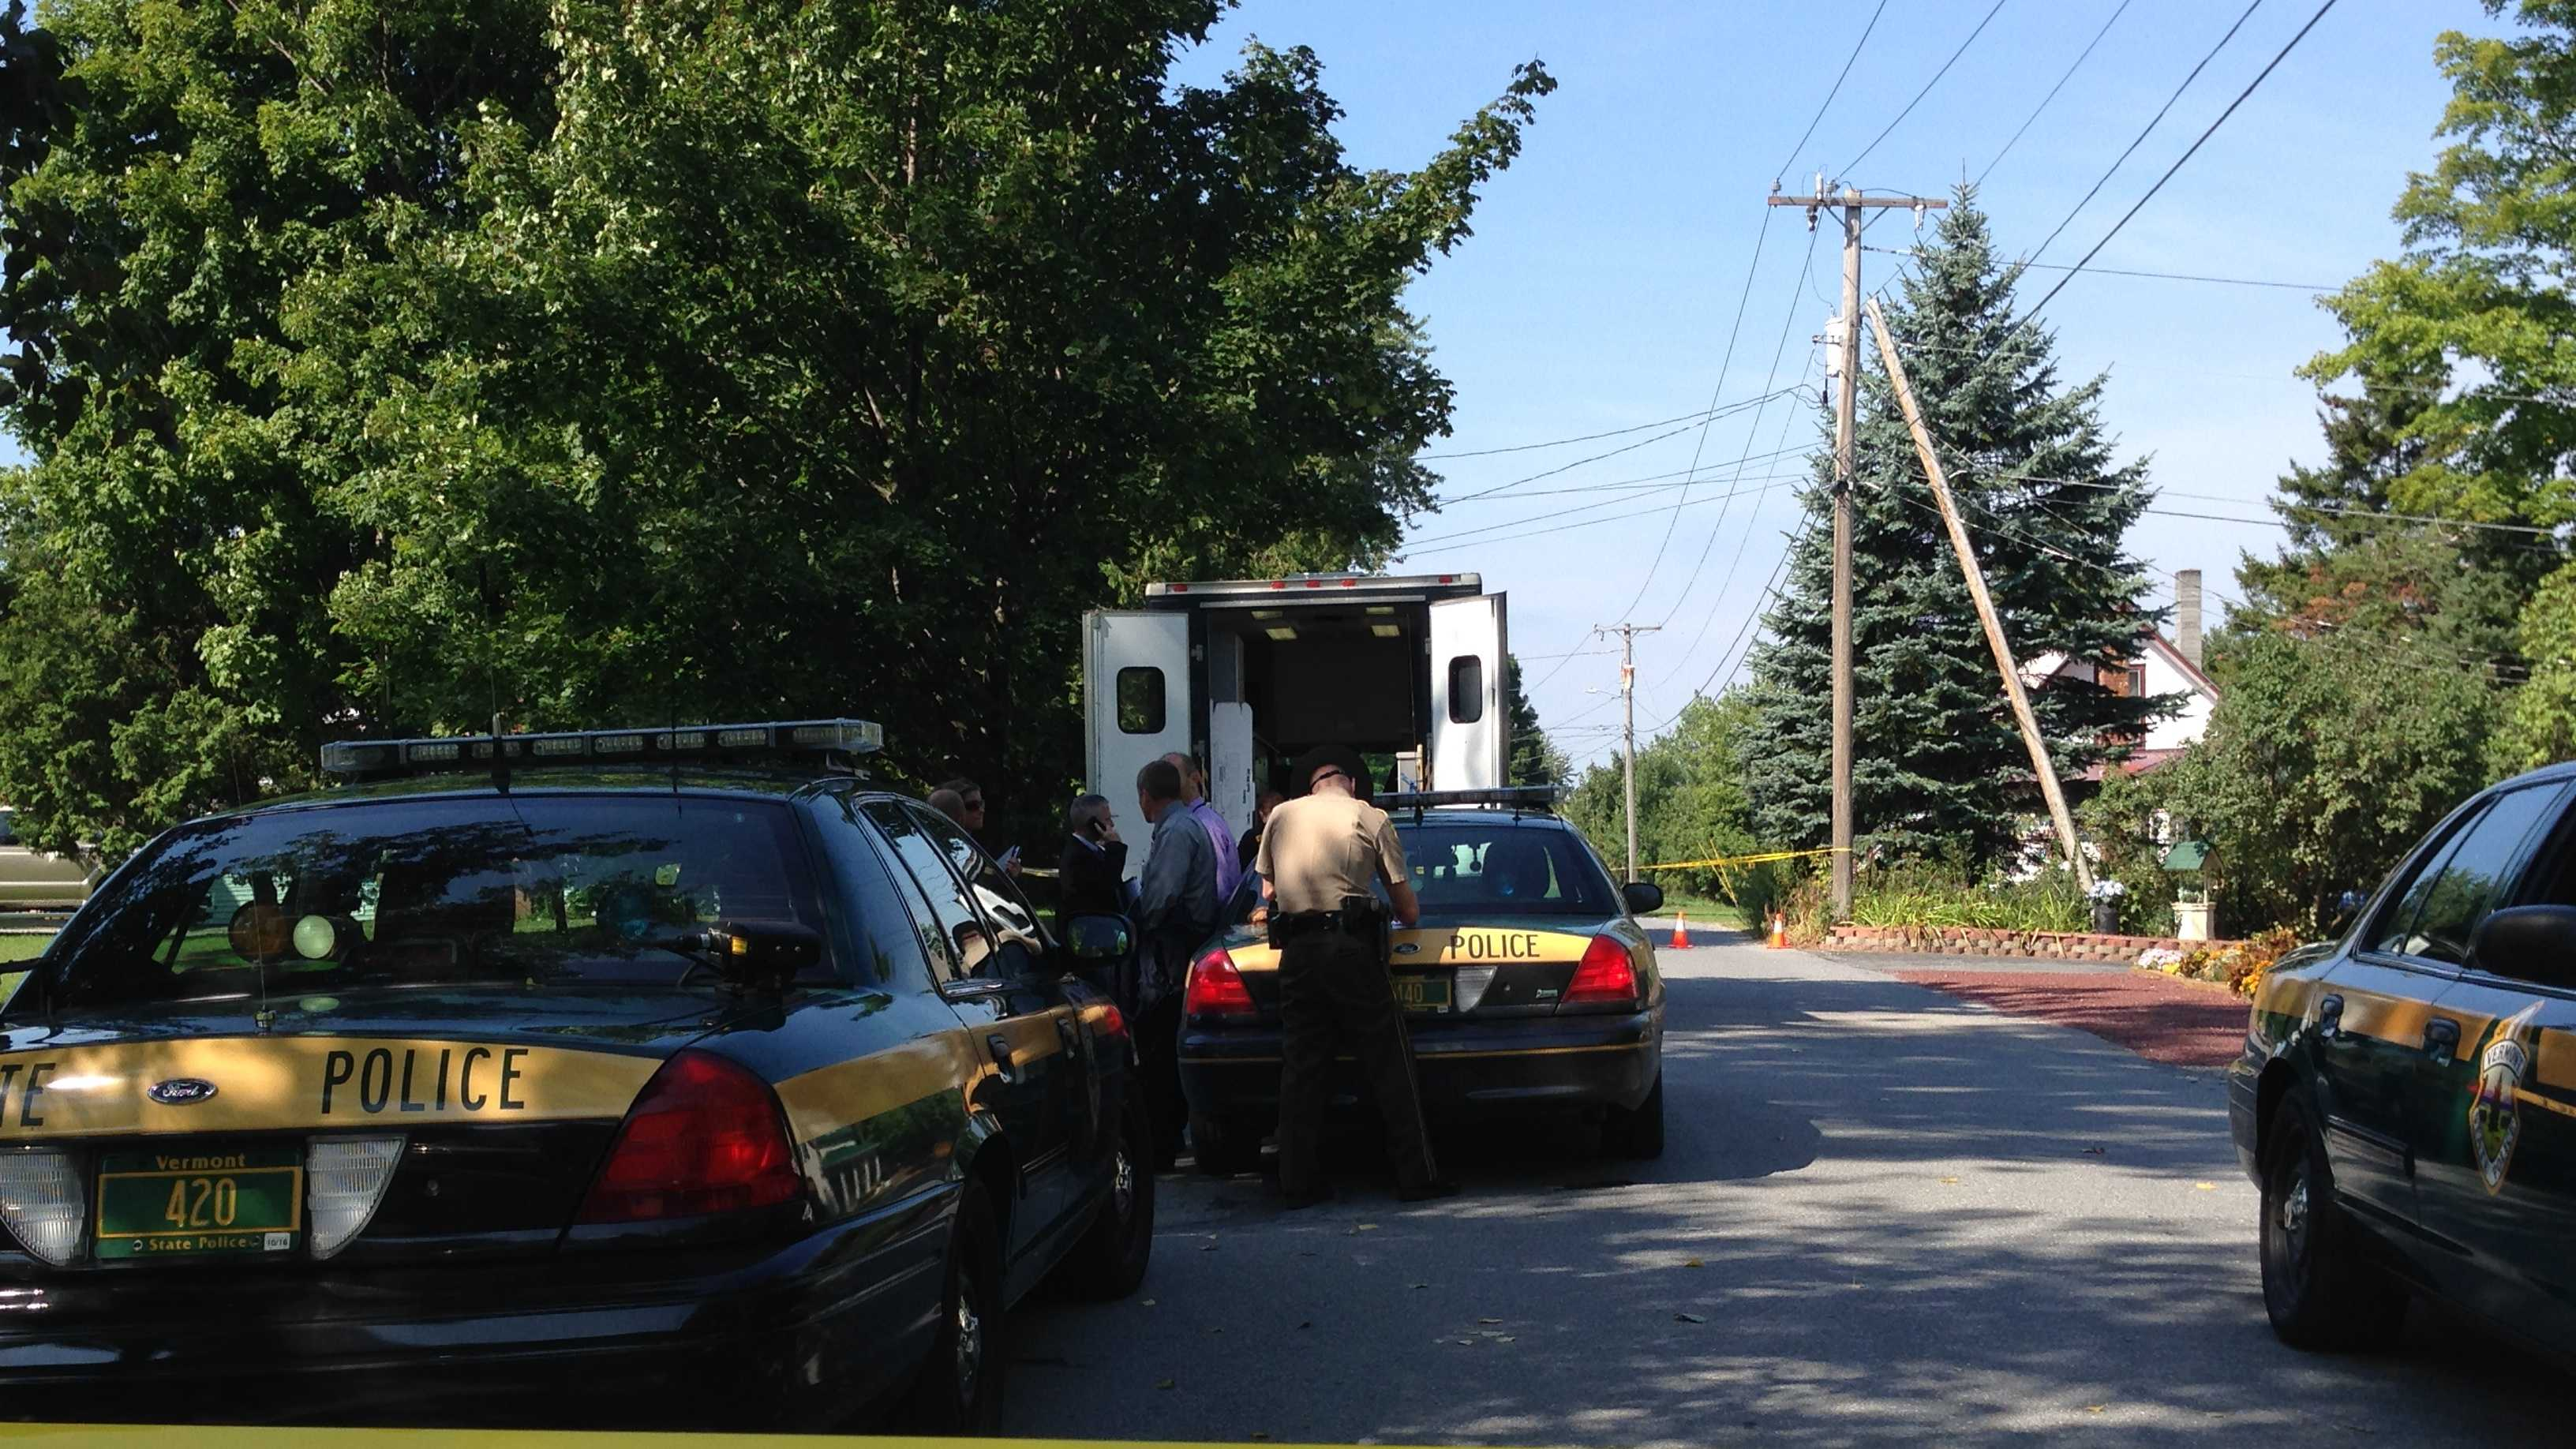 Police are investigating a shooting in Bristol, Vt. Police say they were called to a Pine Street home for a man experiencing a mental health crisis. When they arrived, police say they heard a gunshot and were approached by a woman holding a handgun. An officer shot and injured the woman after they say she ignored commands to drop the gun.